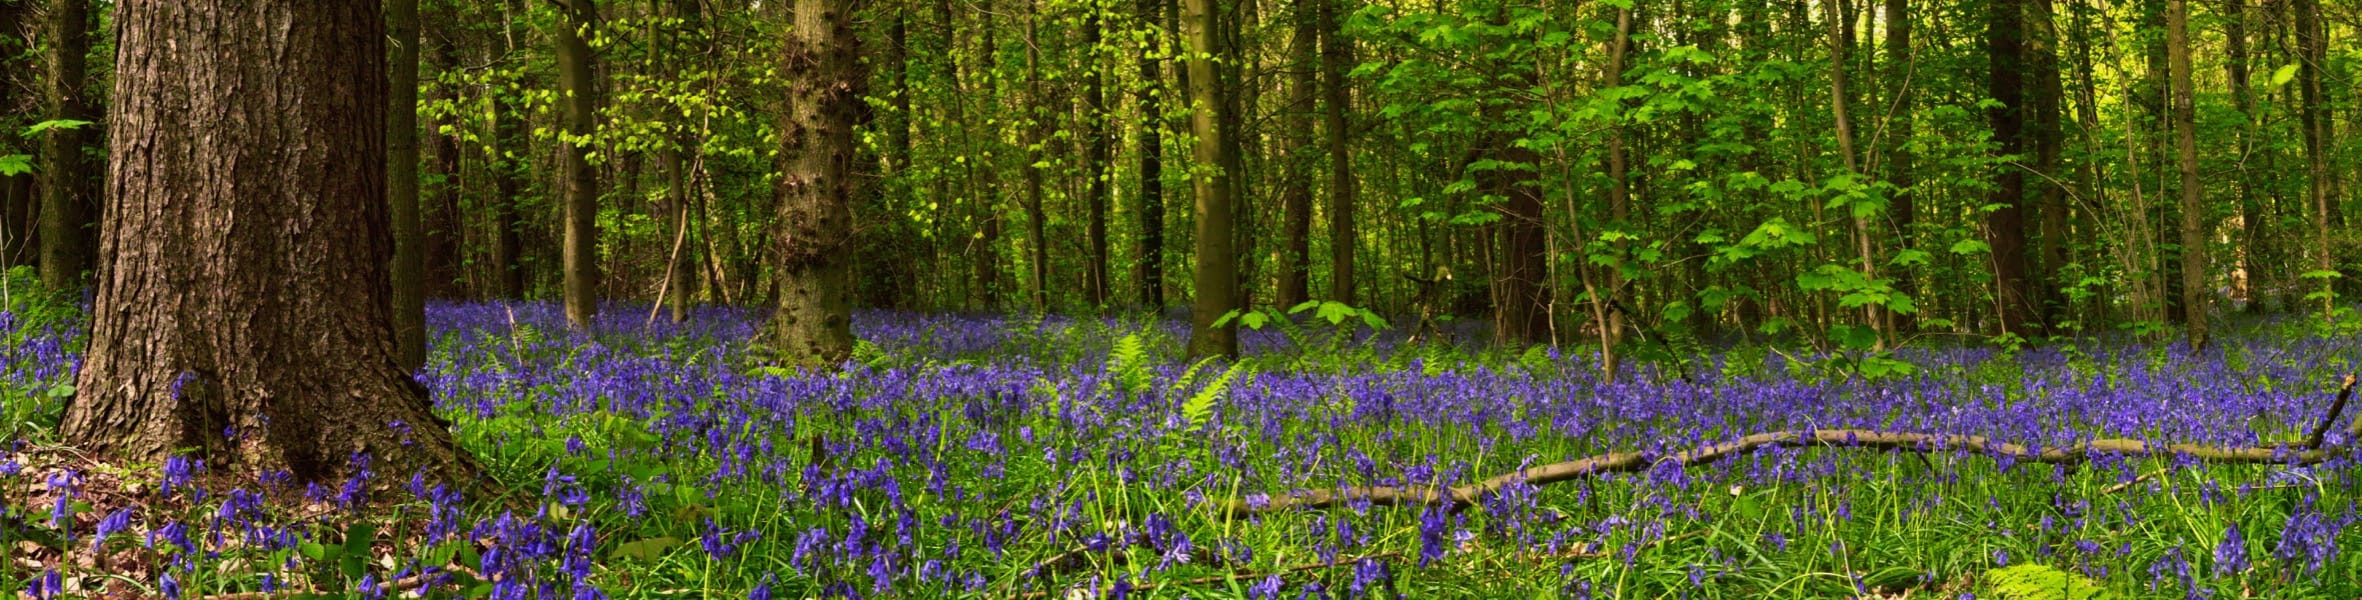 Hallerbos, a magical blue forest